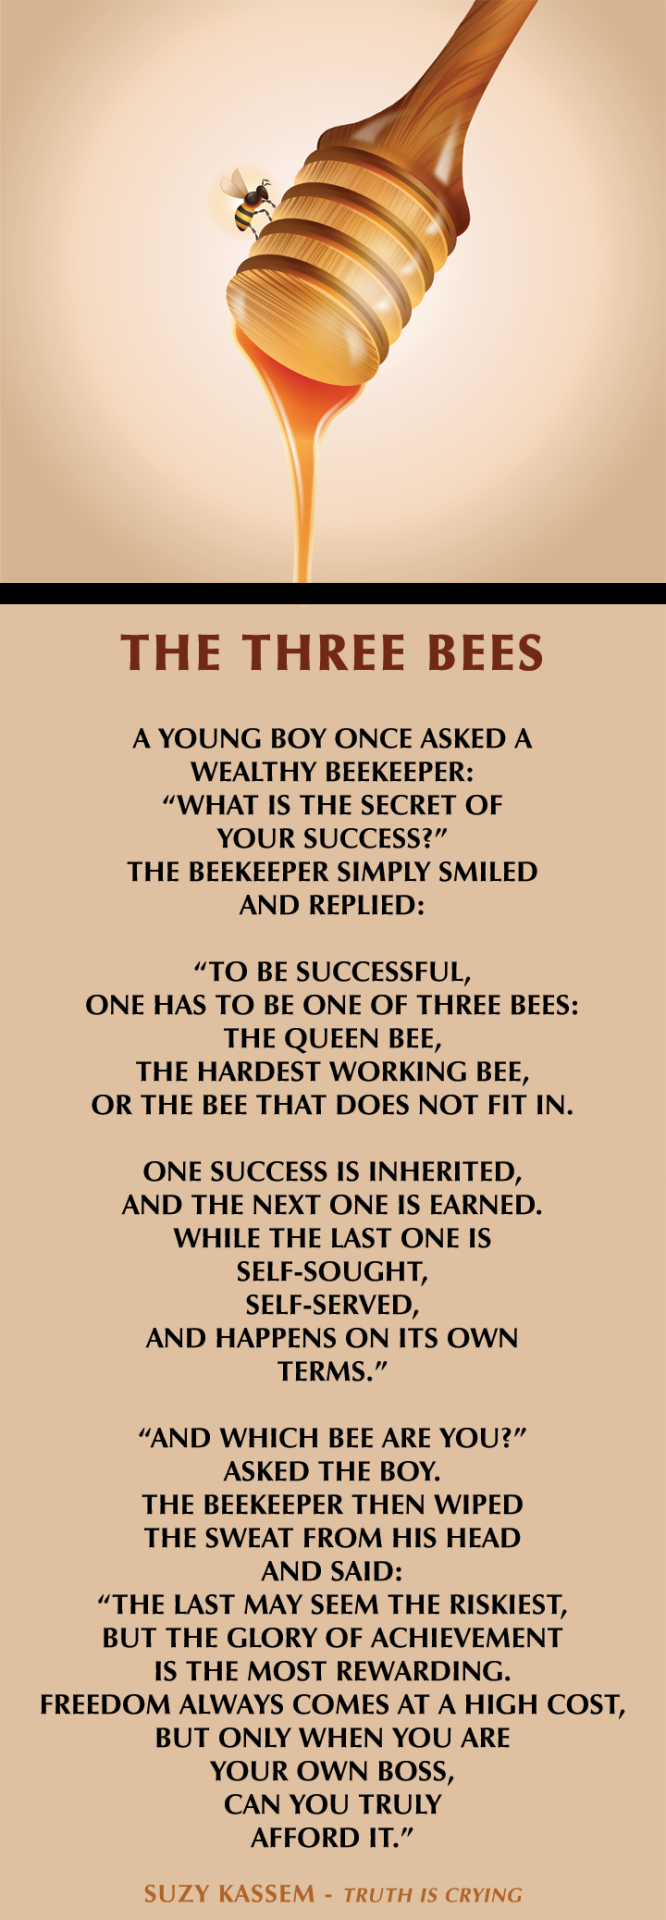 bees, poetry, suzy kassem and suzy kassem poems